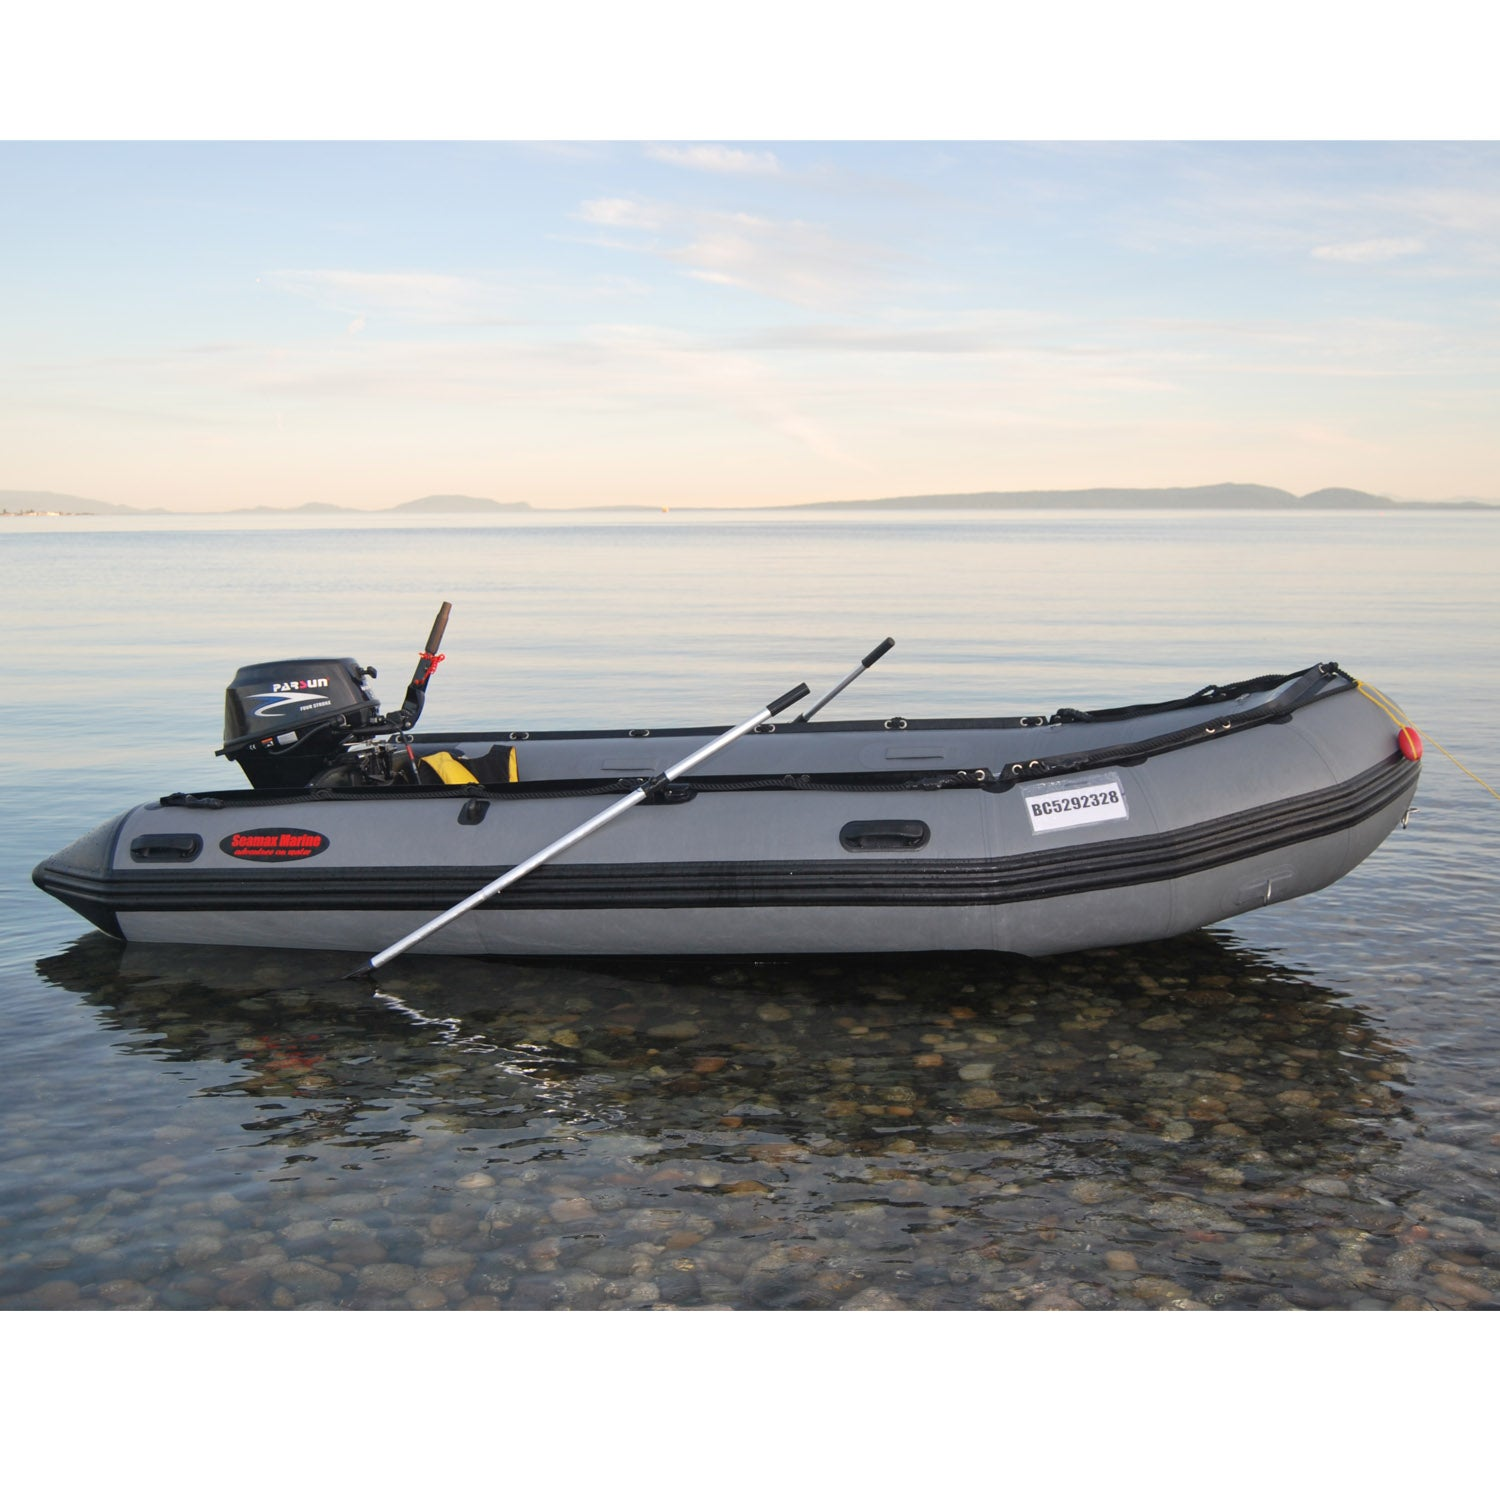 Seamax Ocean430 14 Feet Heavy Duty Inflatable Boat Max 9 Passengers And 35hp Rated likewise 100 Lb Feedforage Additive Applicator Four Outlets in addition Watch moreover 381851807755 as well Index2. on for 5 hp electric motor parts